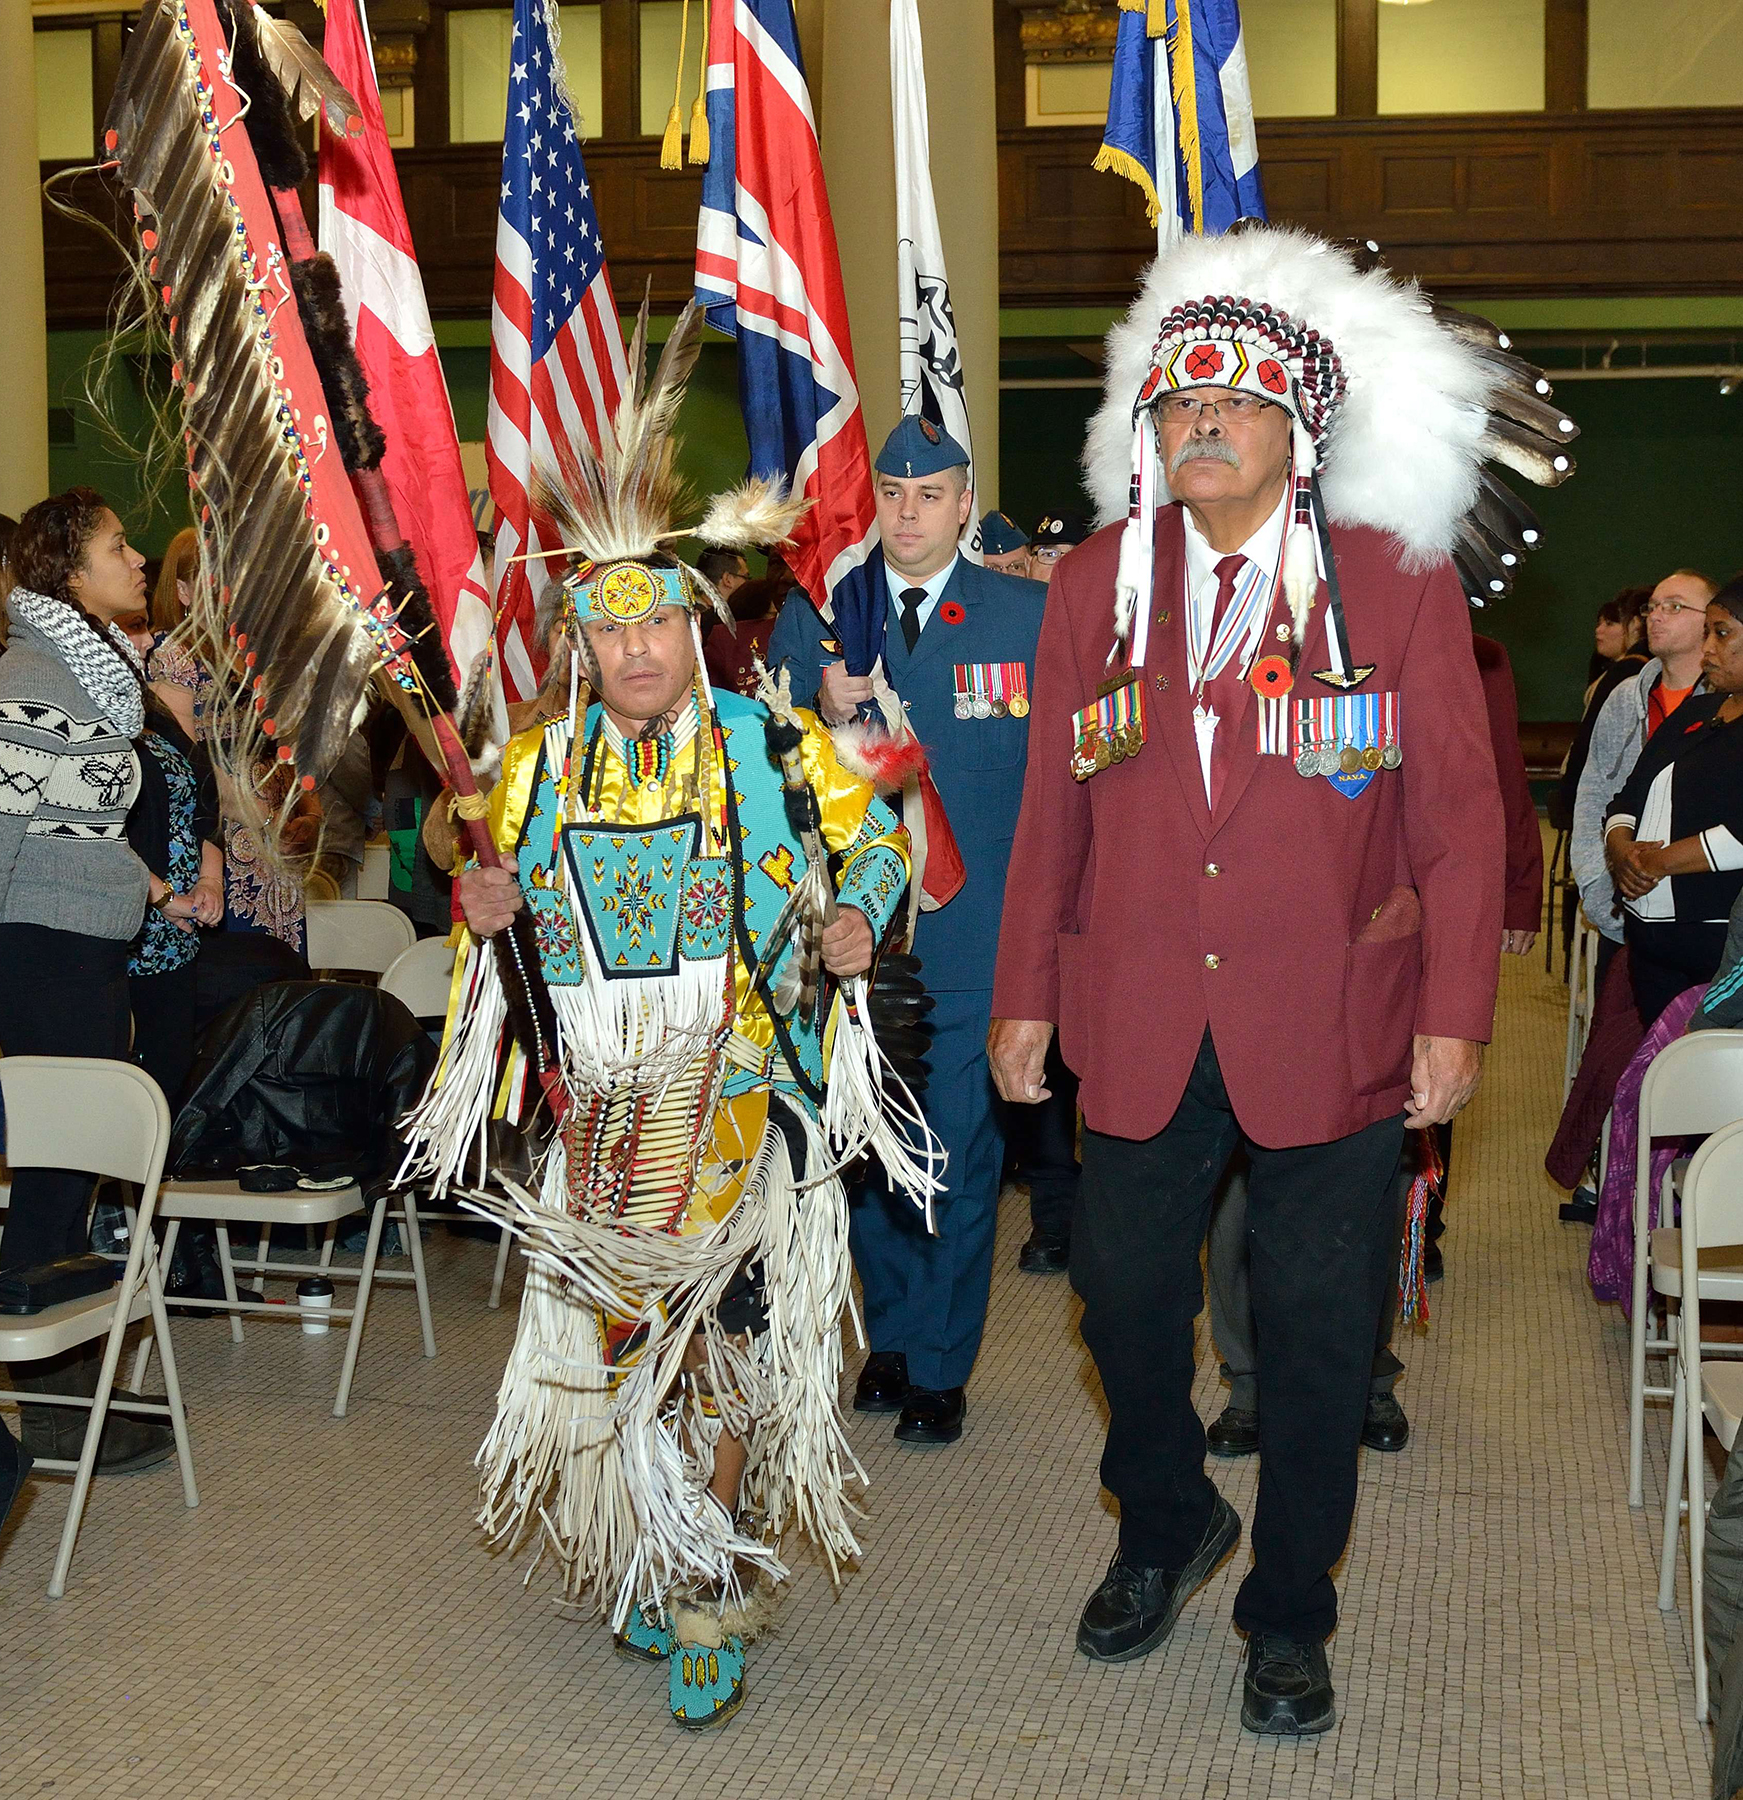 During the Aboriginal Veteran's Day Ceremony held on November 6, 2015, at the Centre for Aboriginal Human Resource Development in Winnipeg, Manitoba, the grand entry of the Eagle Staff is led by dancer Lauren Stevenson and George Anderson in the eagle feather headdress, followed by 17 Wing Winnipeg's Sergeant Matthew Keddy. The wing's Defence Aboriginal Advisory Group and the wing command team of Colonel Andy Cook and wing Chief Warrant Officer Mike Robertson participated in the ceremony. PHOTO: Sergeant Bill McLeod